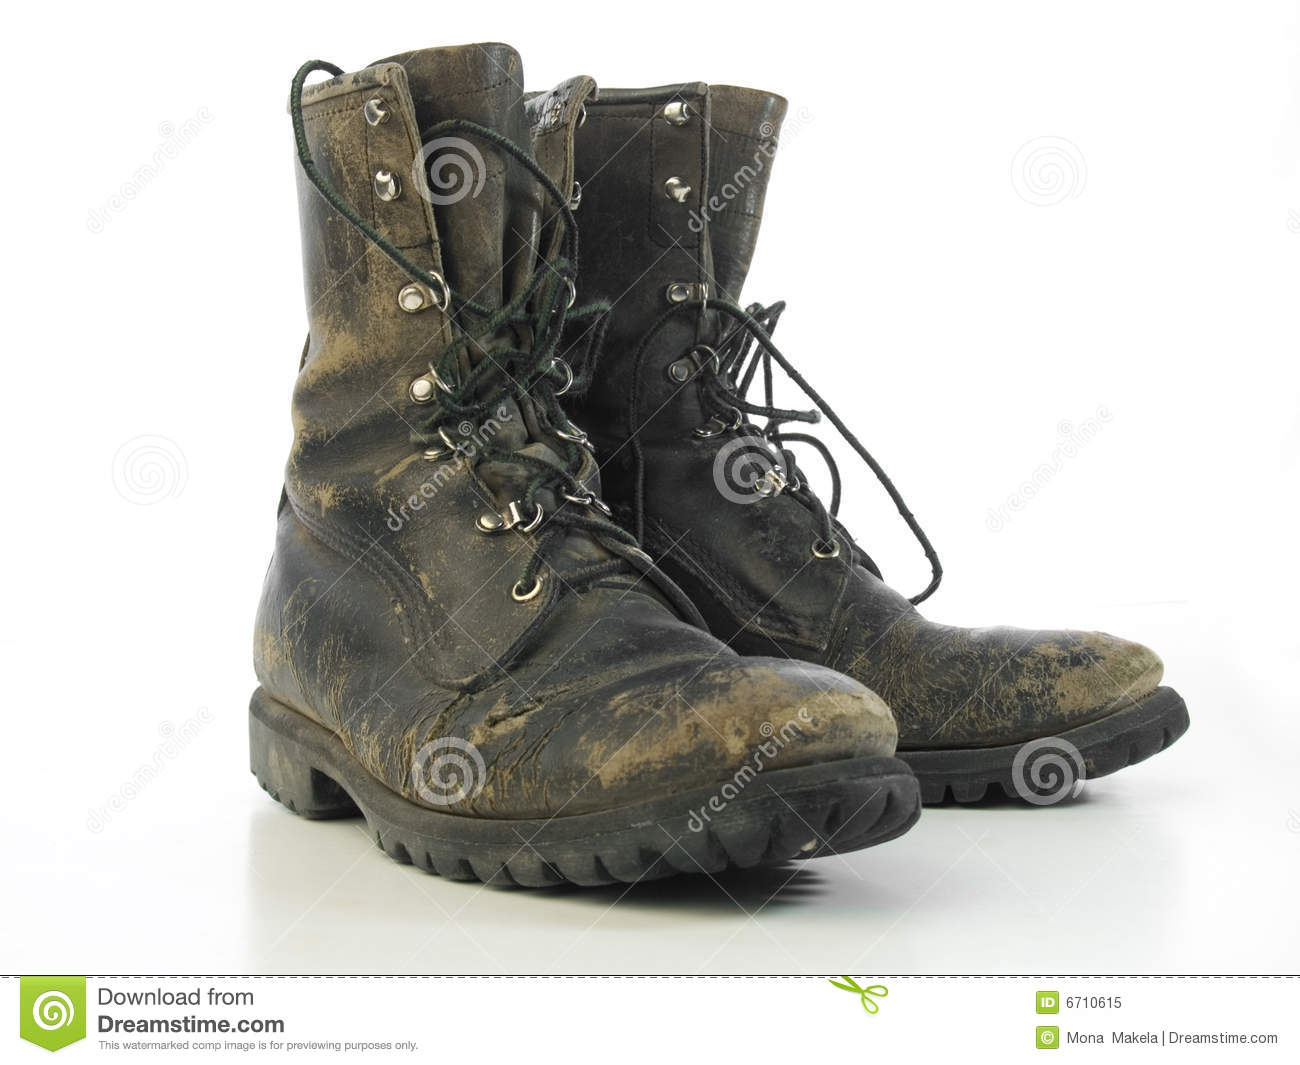 Pair Of Muddy Combat Boots Royalty Free Stock Photo   Image  6710615